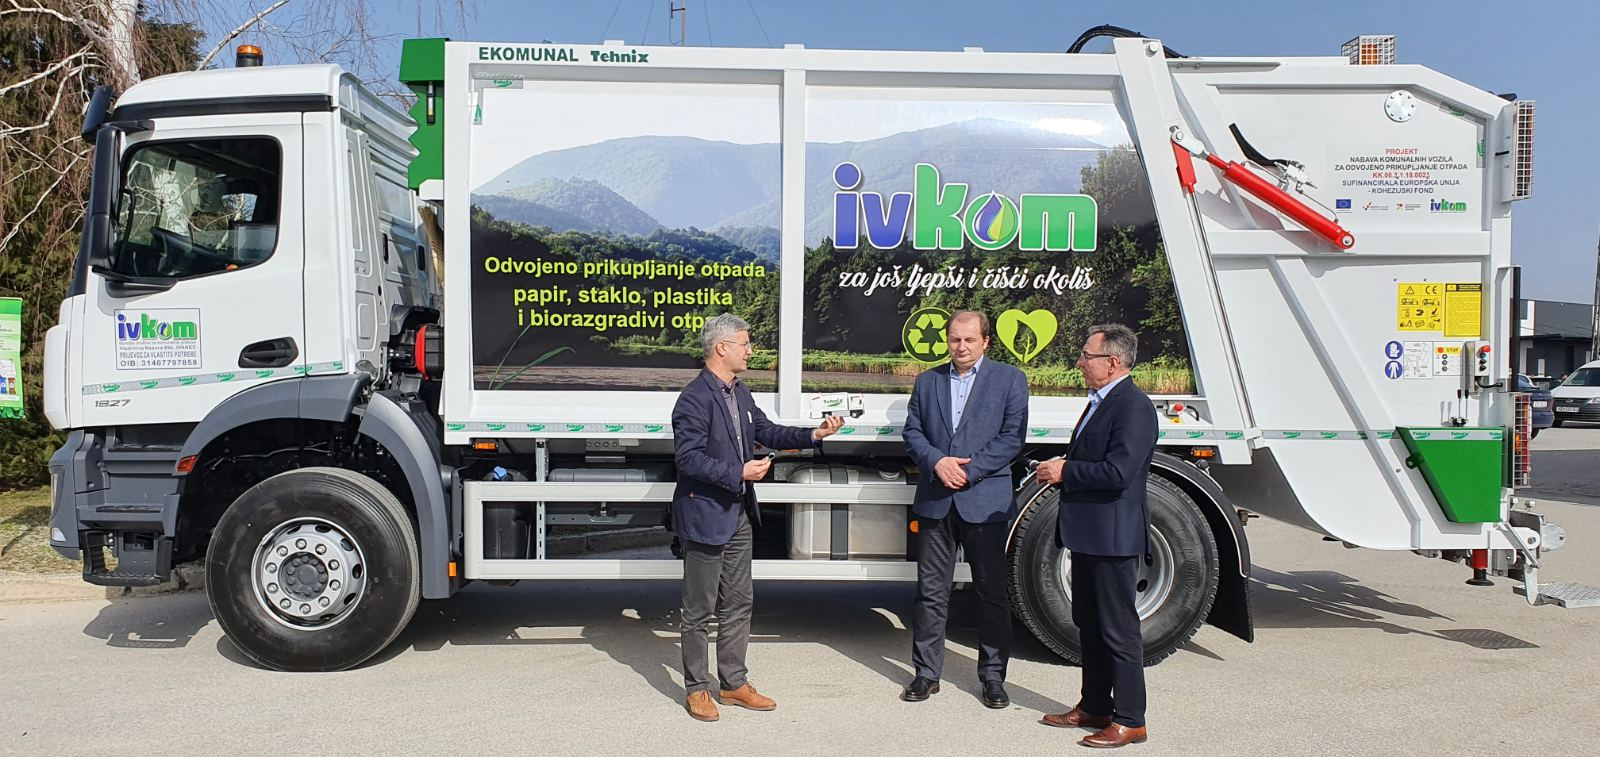 Handover of the Municipal Vehicle for Ivkom d.d. Ivanec